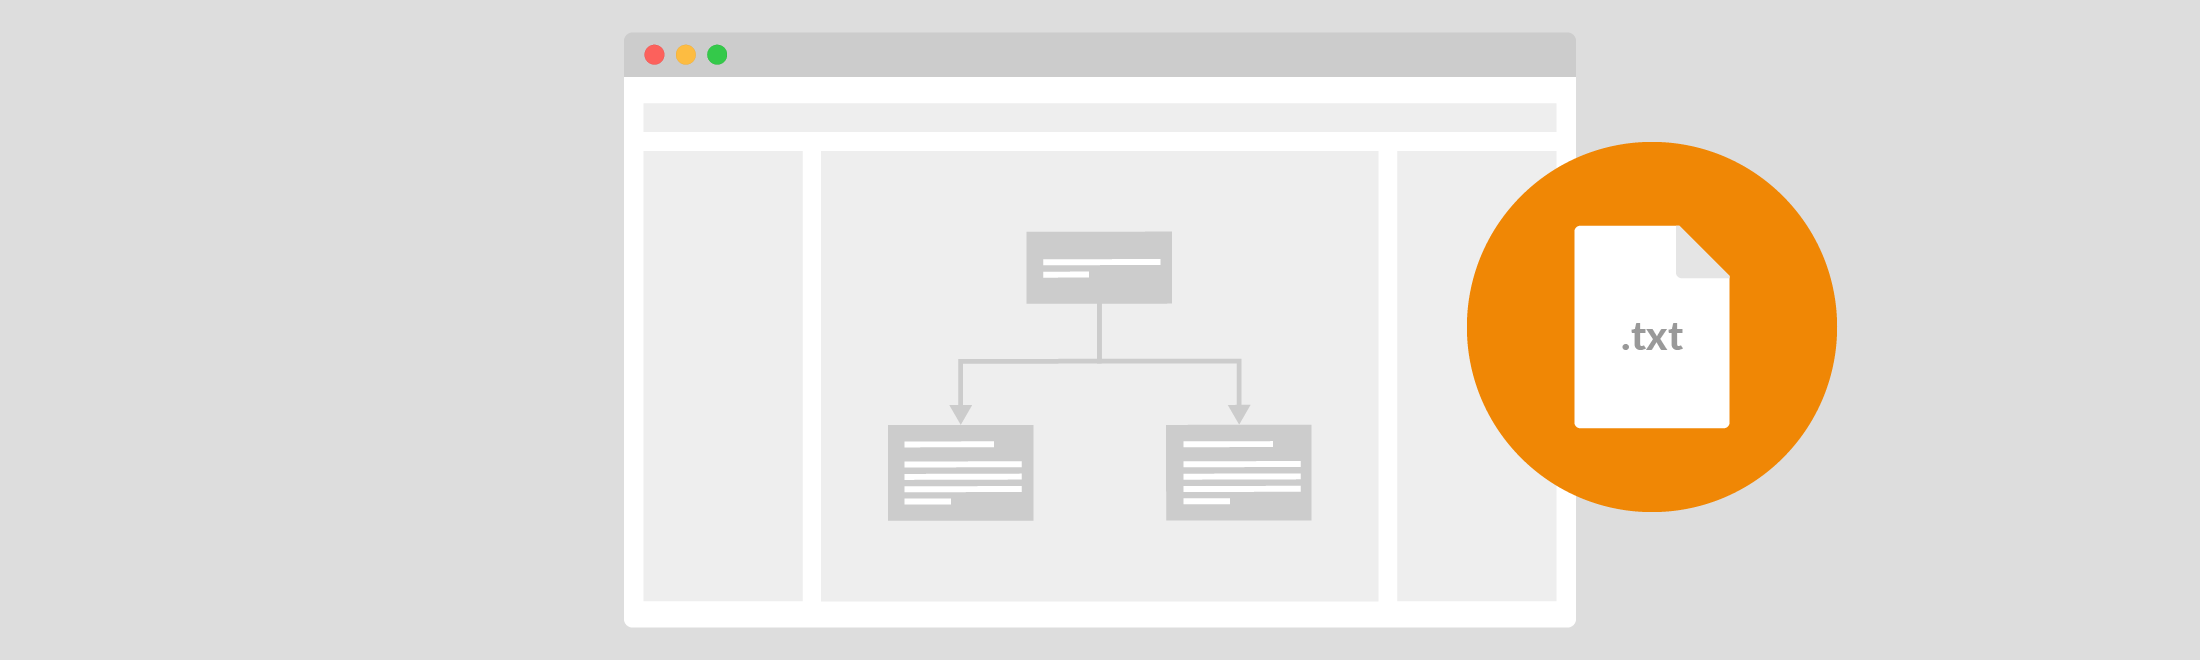 Using the draw.io text plugin, you can extract the text directly from any flowchart, diagram, or even infographic.